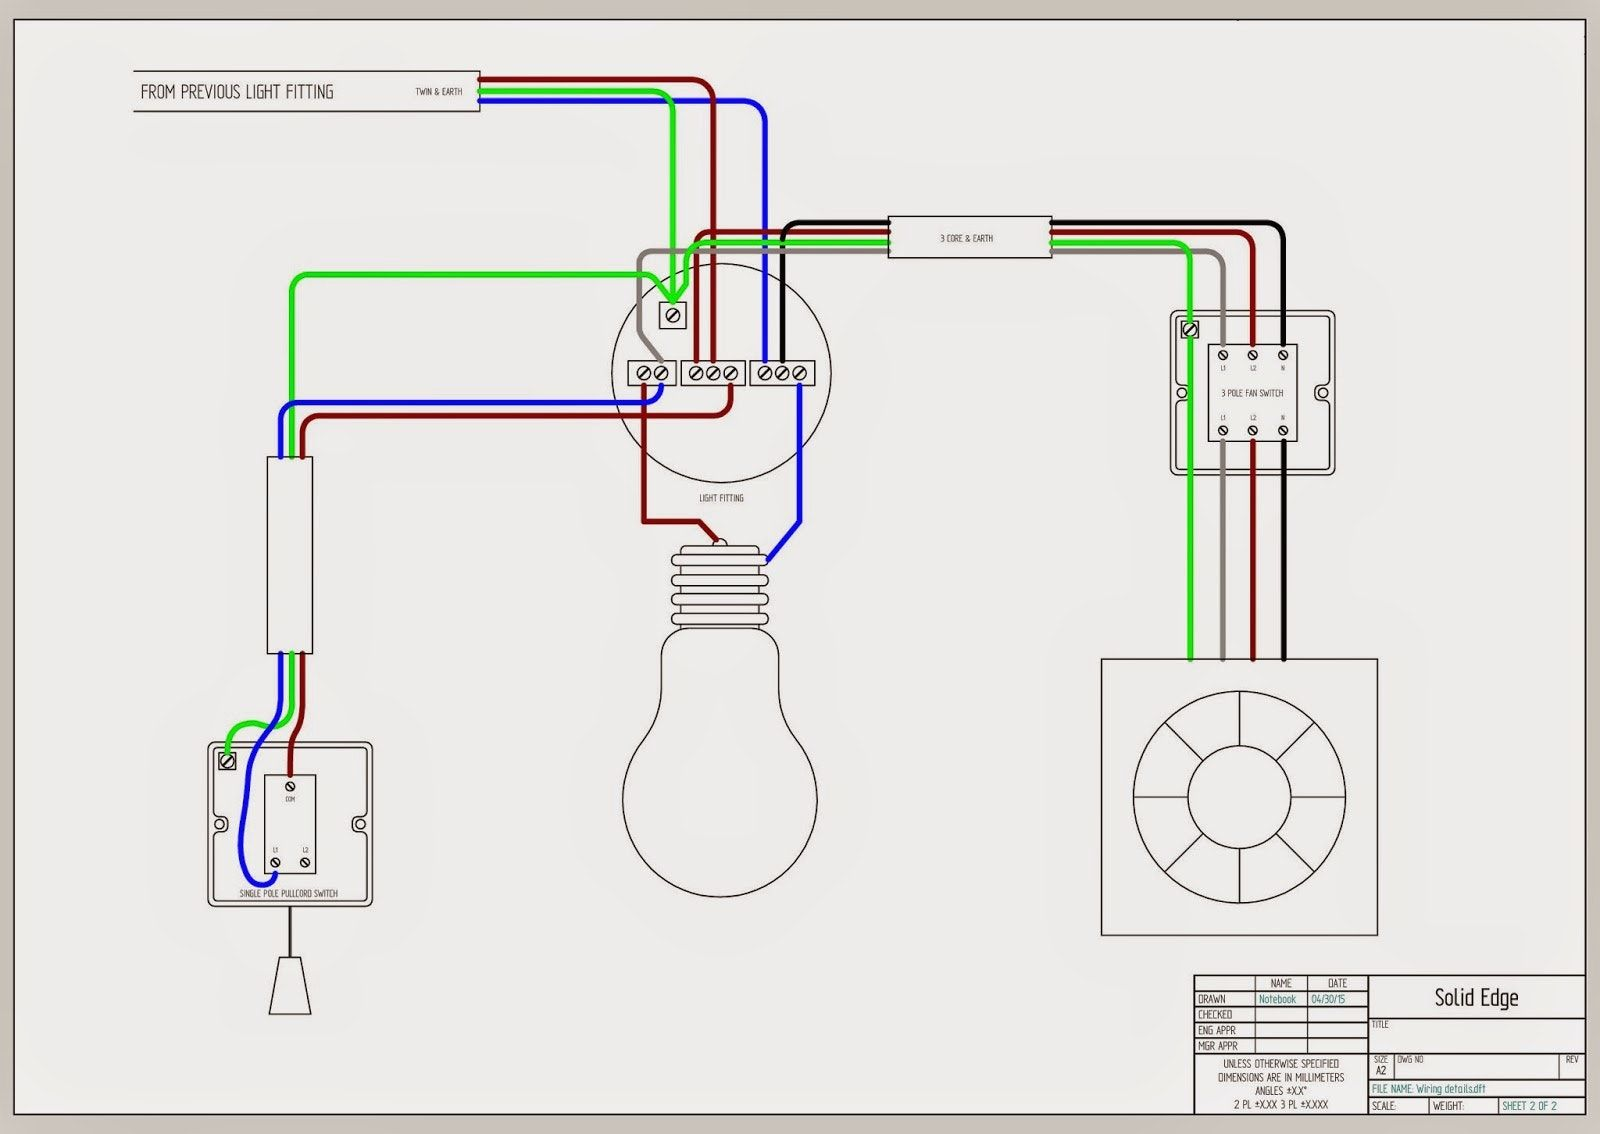 wiring diagram for bathroom fan and light where is my stomach located image result isolator switch